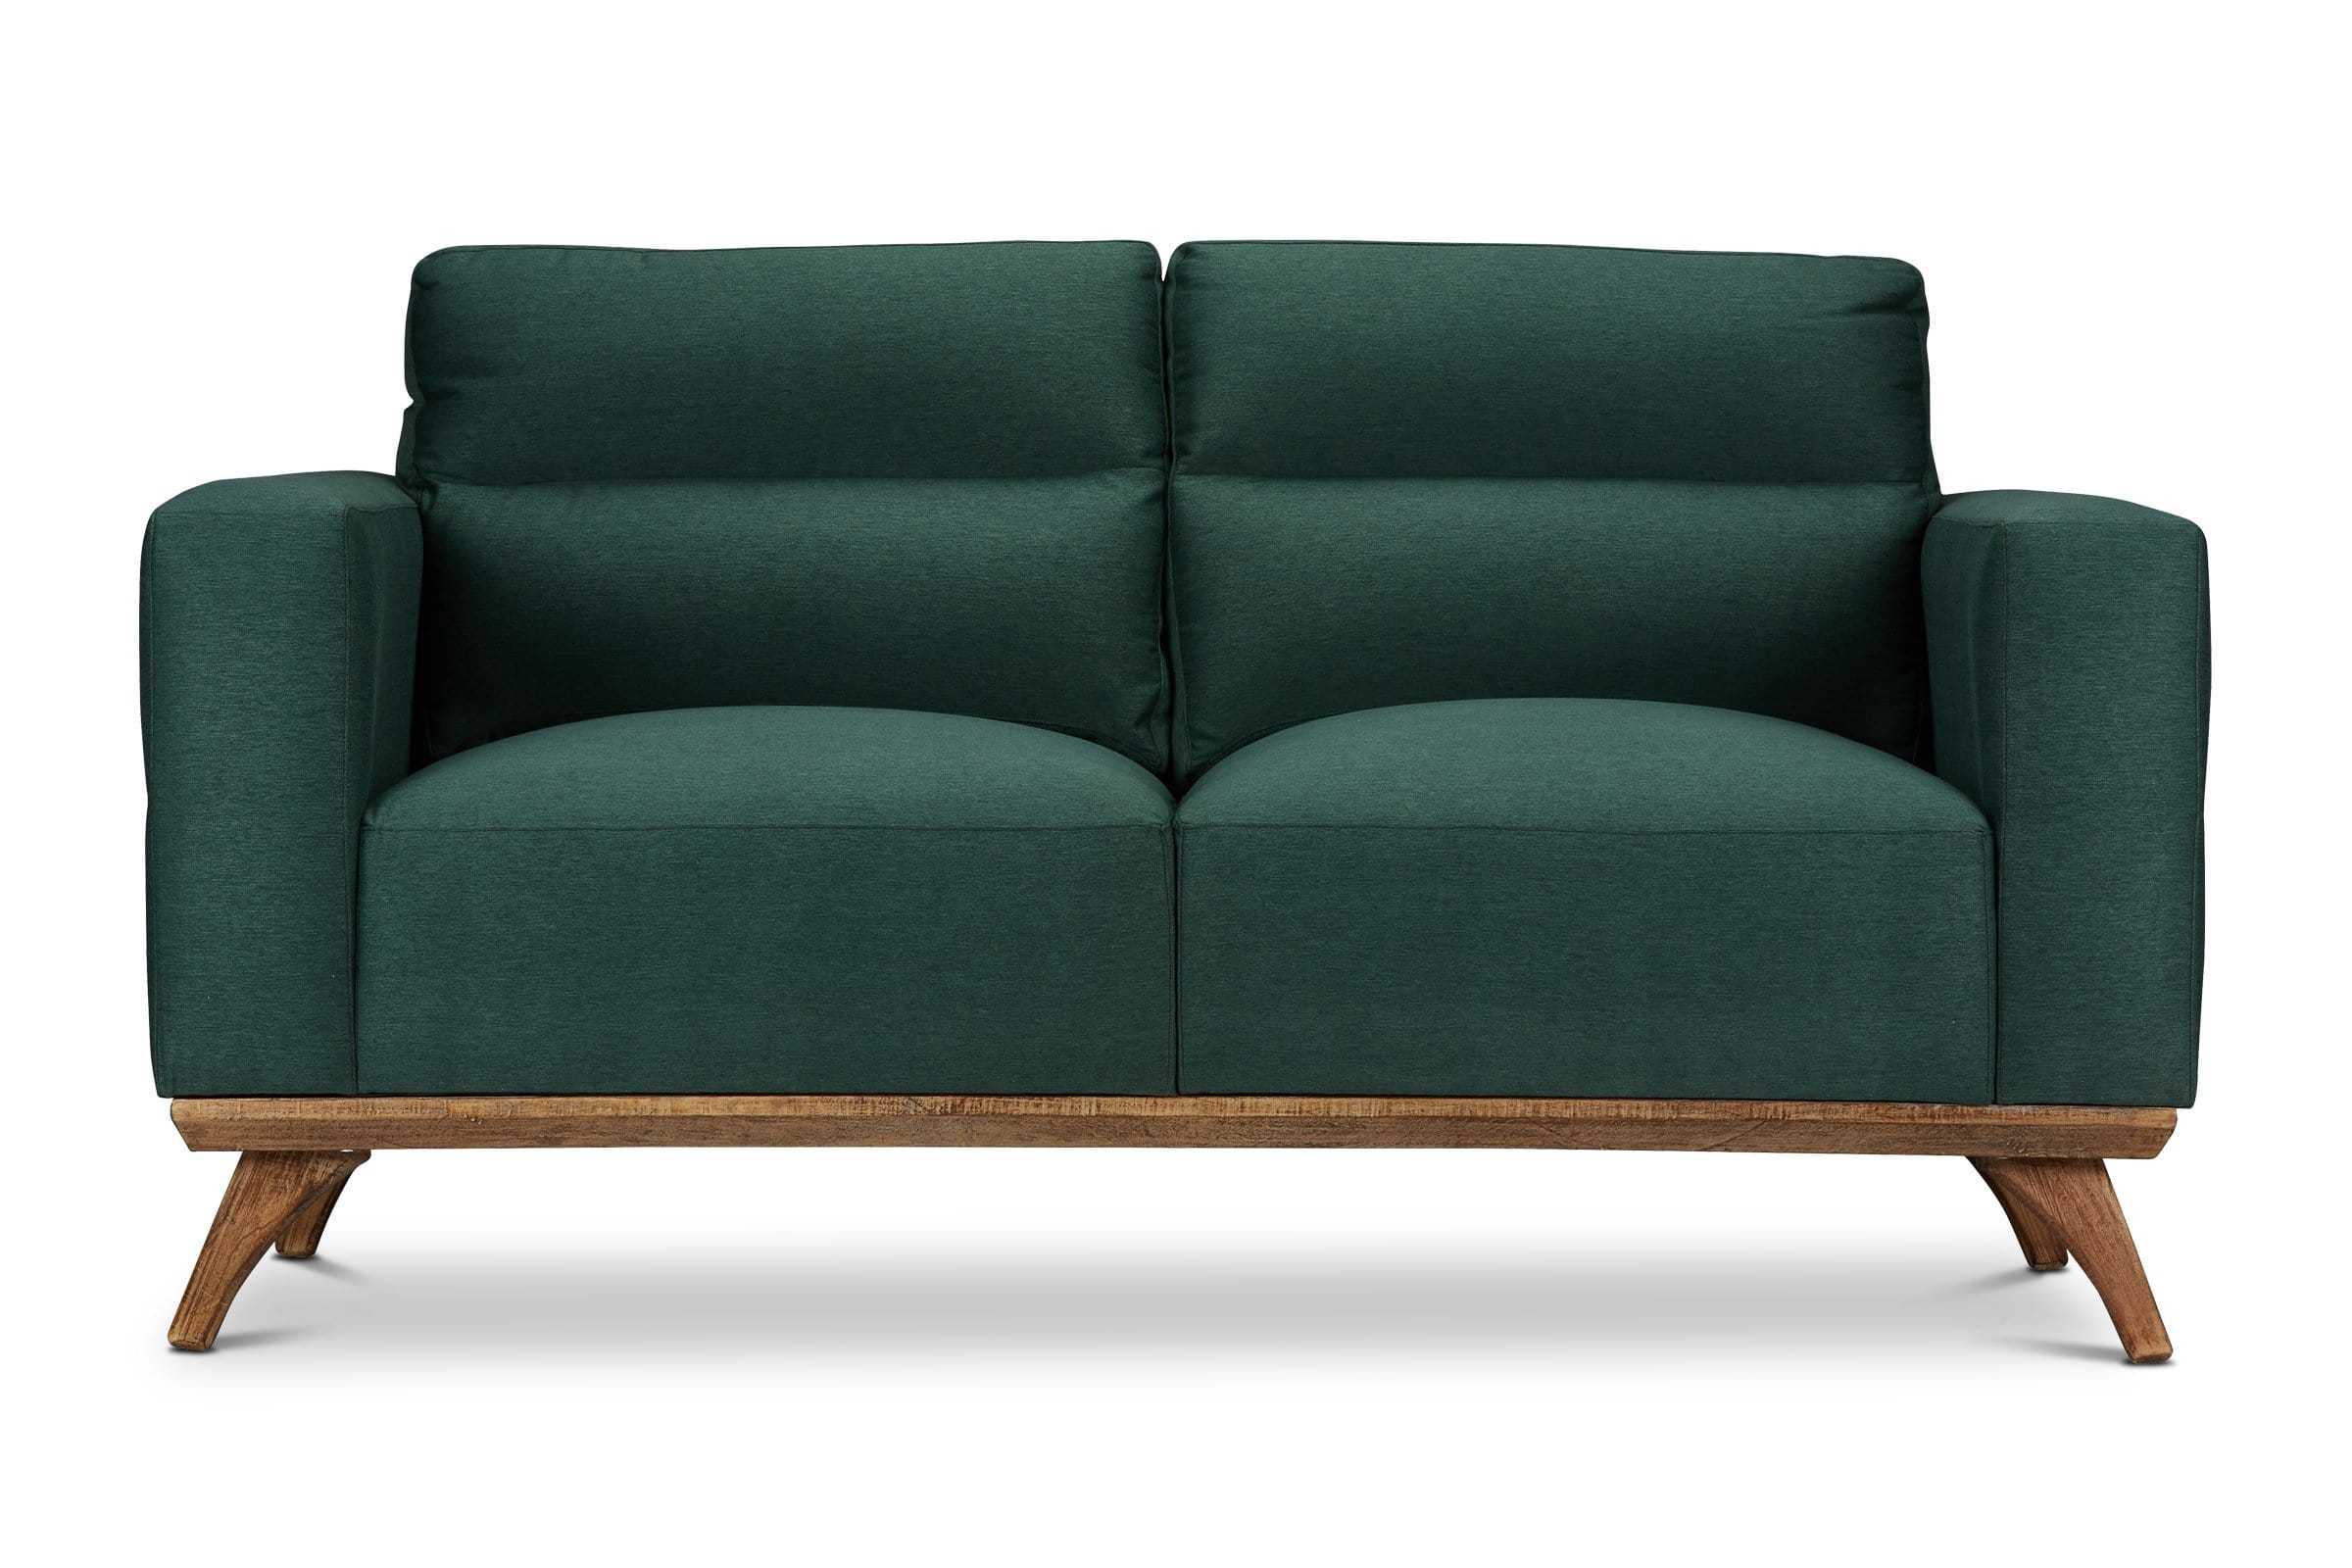 Embry Loveseat - Dark Green - Modern Furniture - Sold by Apt2B - Dark Green - Small Space Modern Couch Made in the USA - Sold by Apt2B